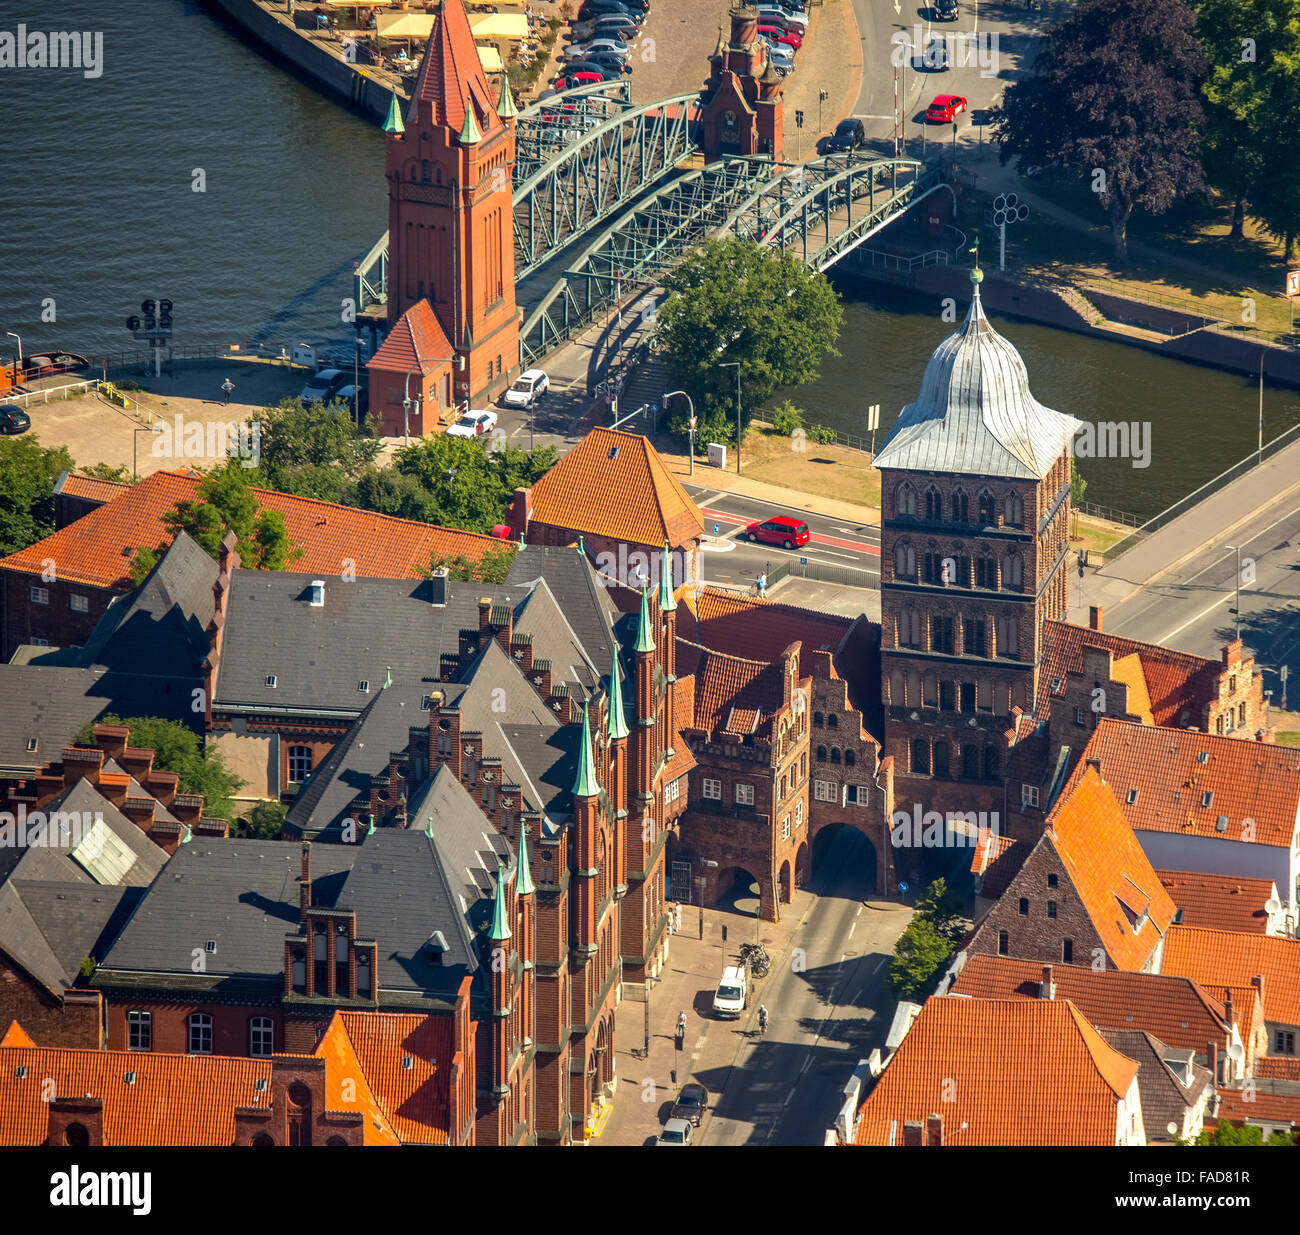 luebeck germany aerial stock photos luebeck germany aerial stock images alamy. Black Bedroom Furniture Sets. Home Design Ideas